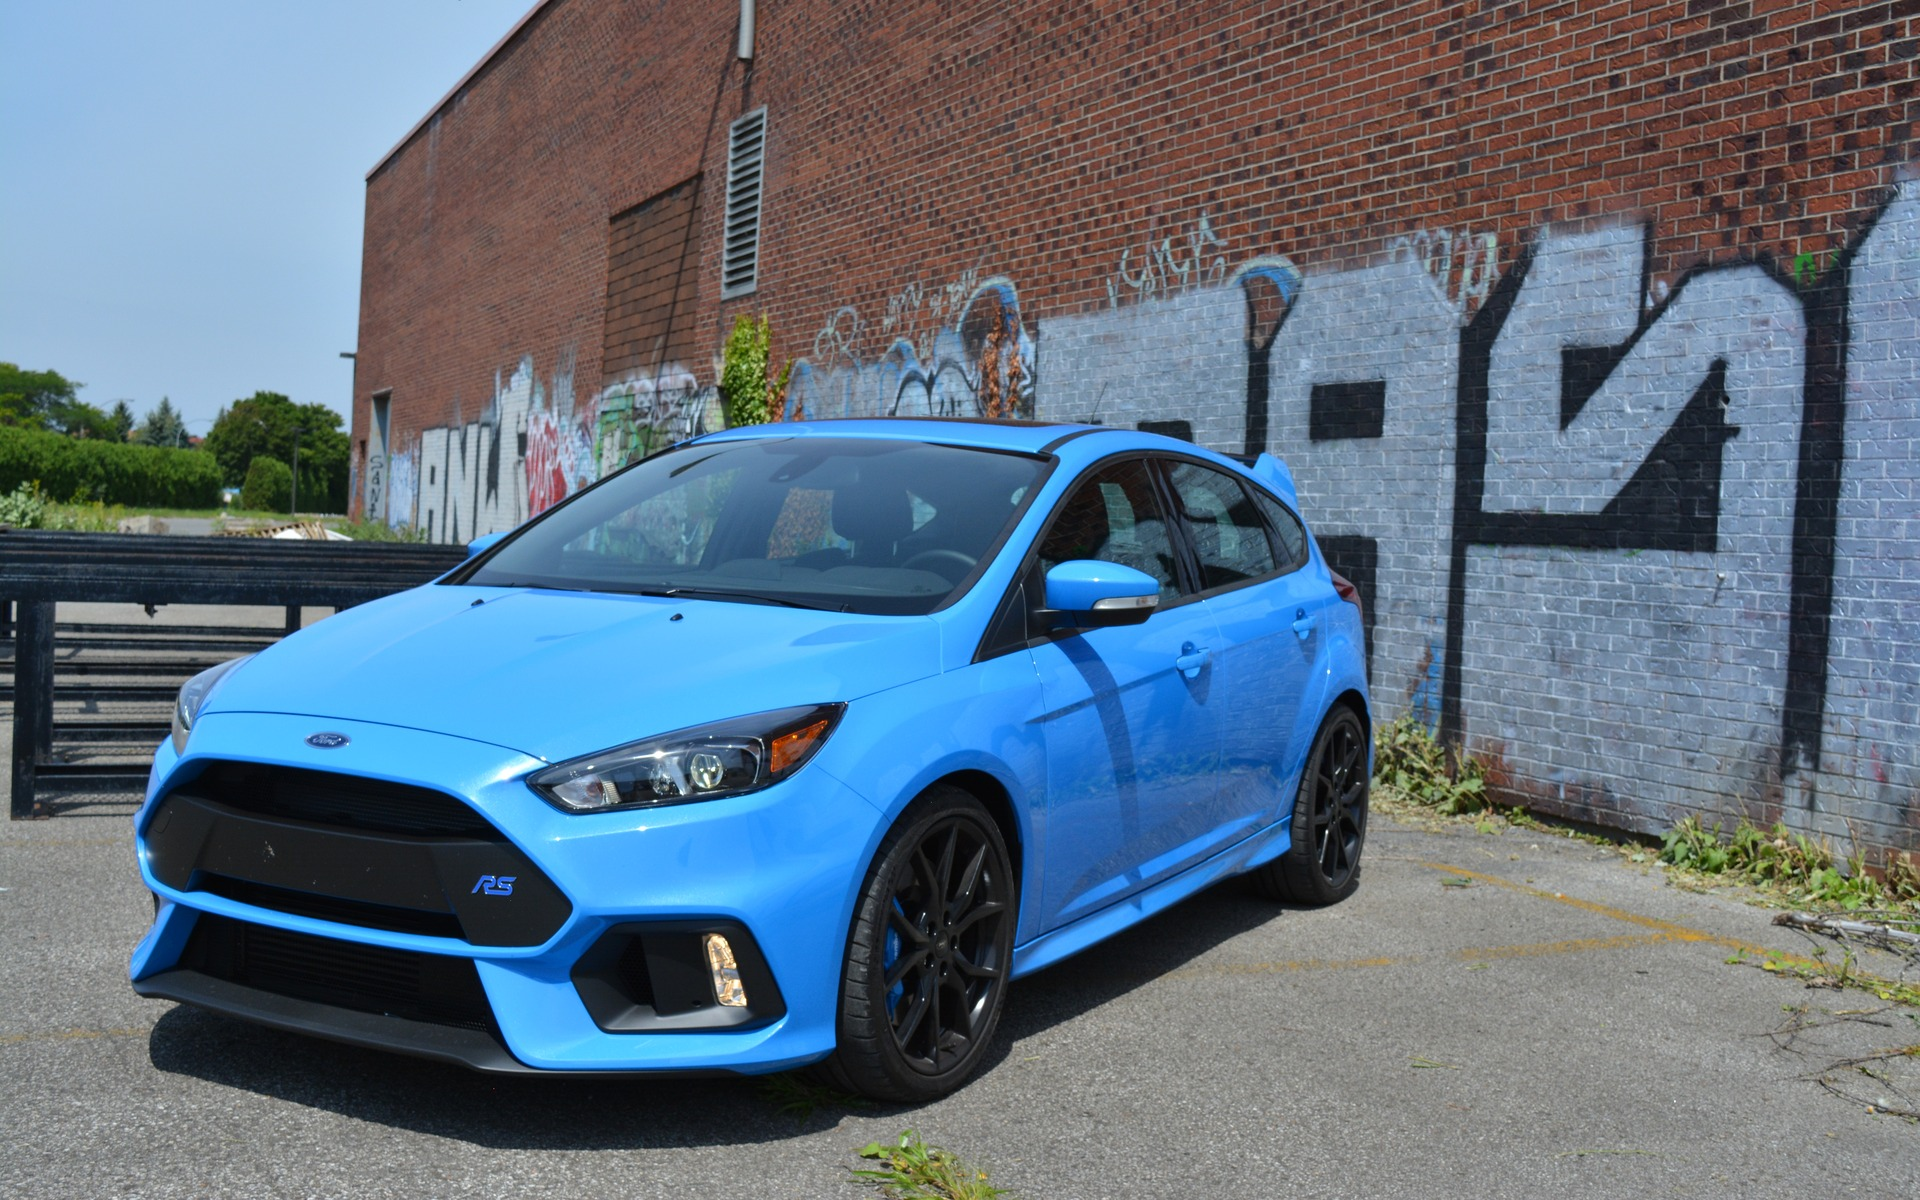 2017 ford focus rs specifications the car guide. Black Bedroom Furniture Sets. Home Design Ideas